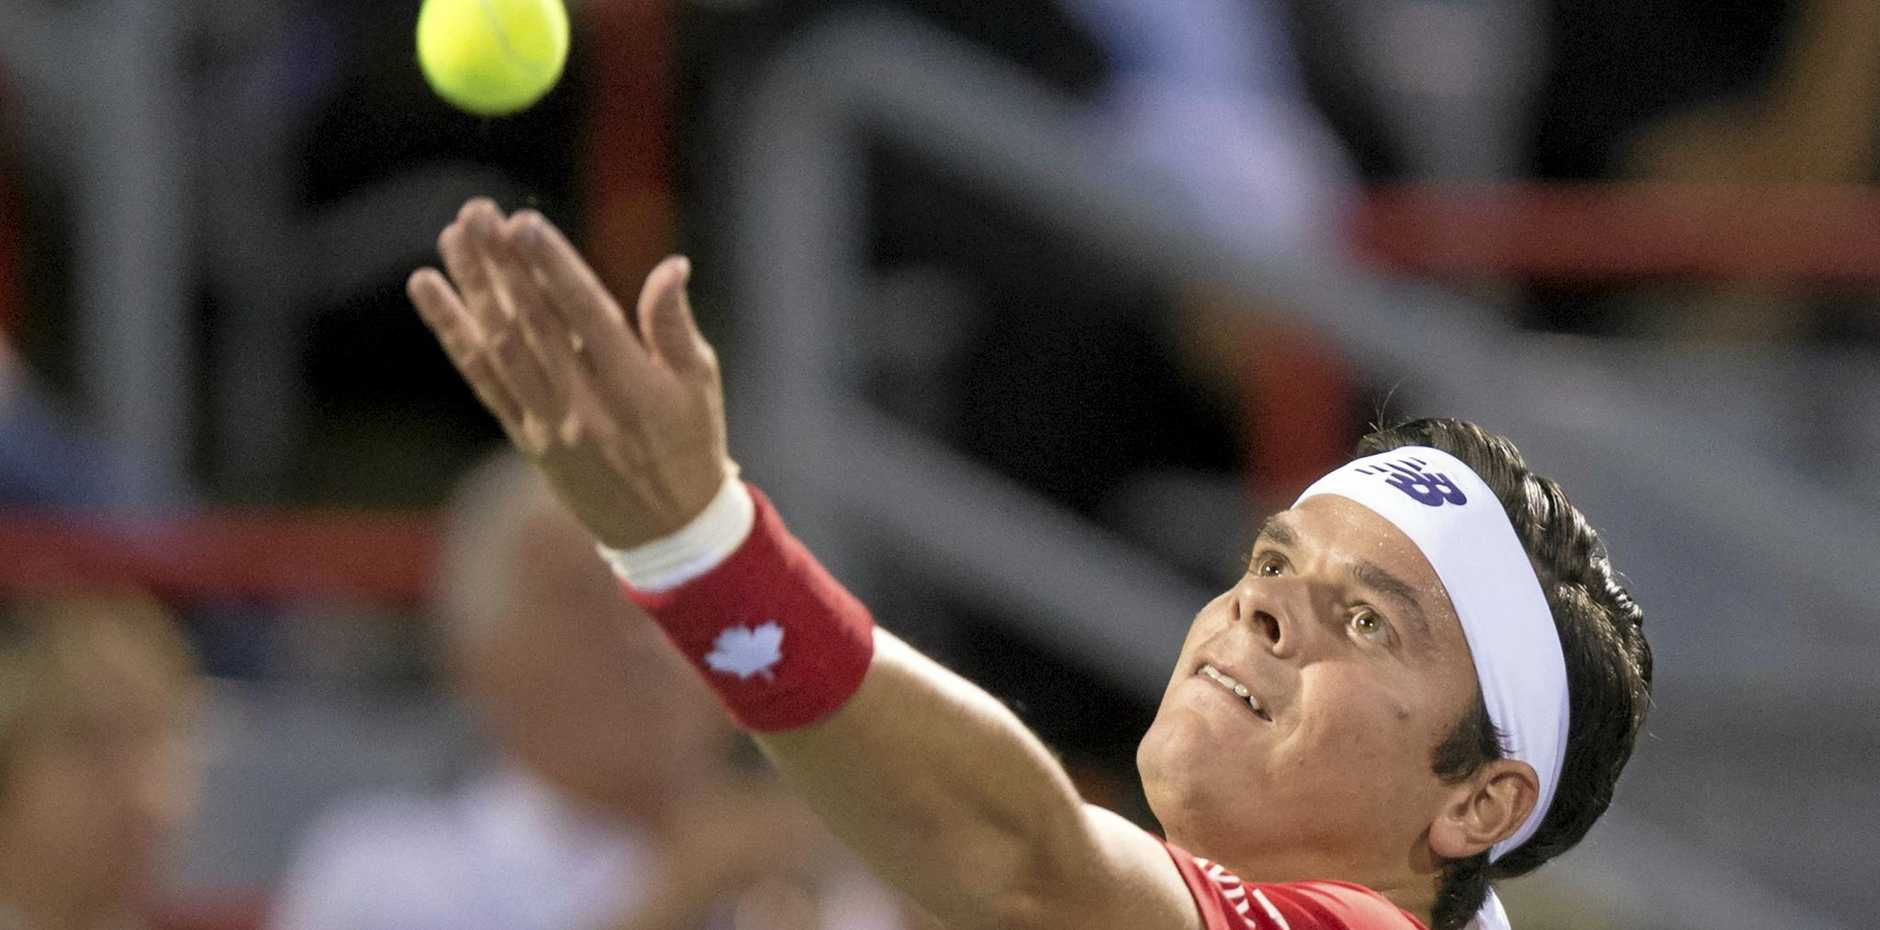 Milos Raonic of Canada prepares to serve to Adrian Mannarino of France in Montreal.